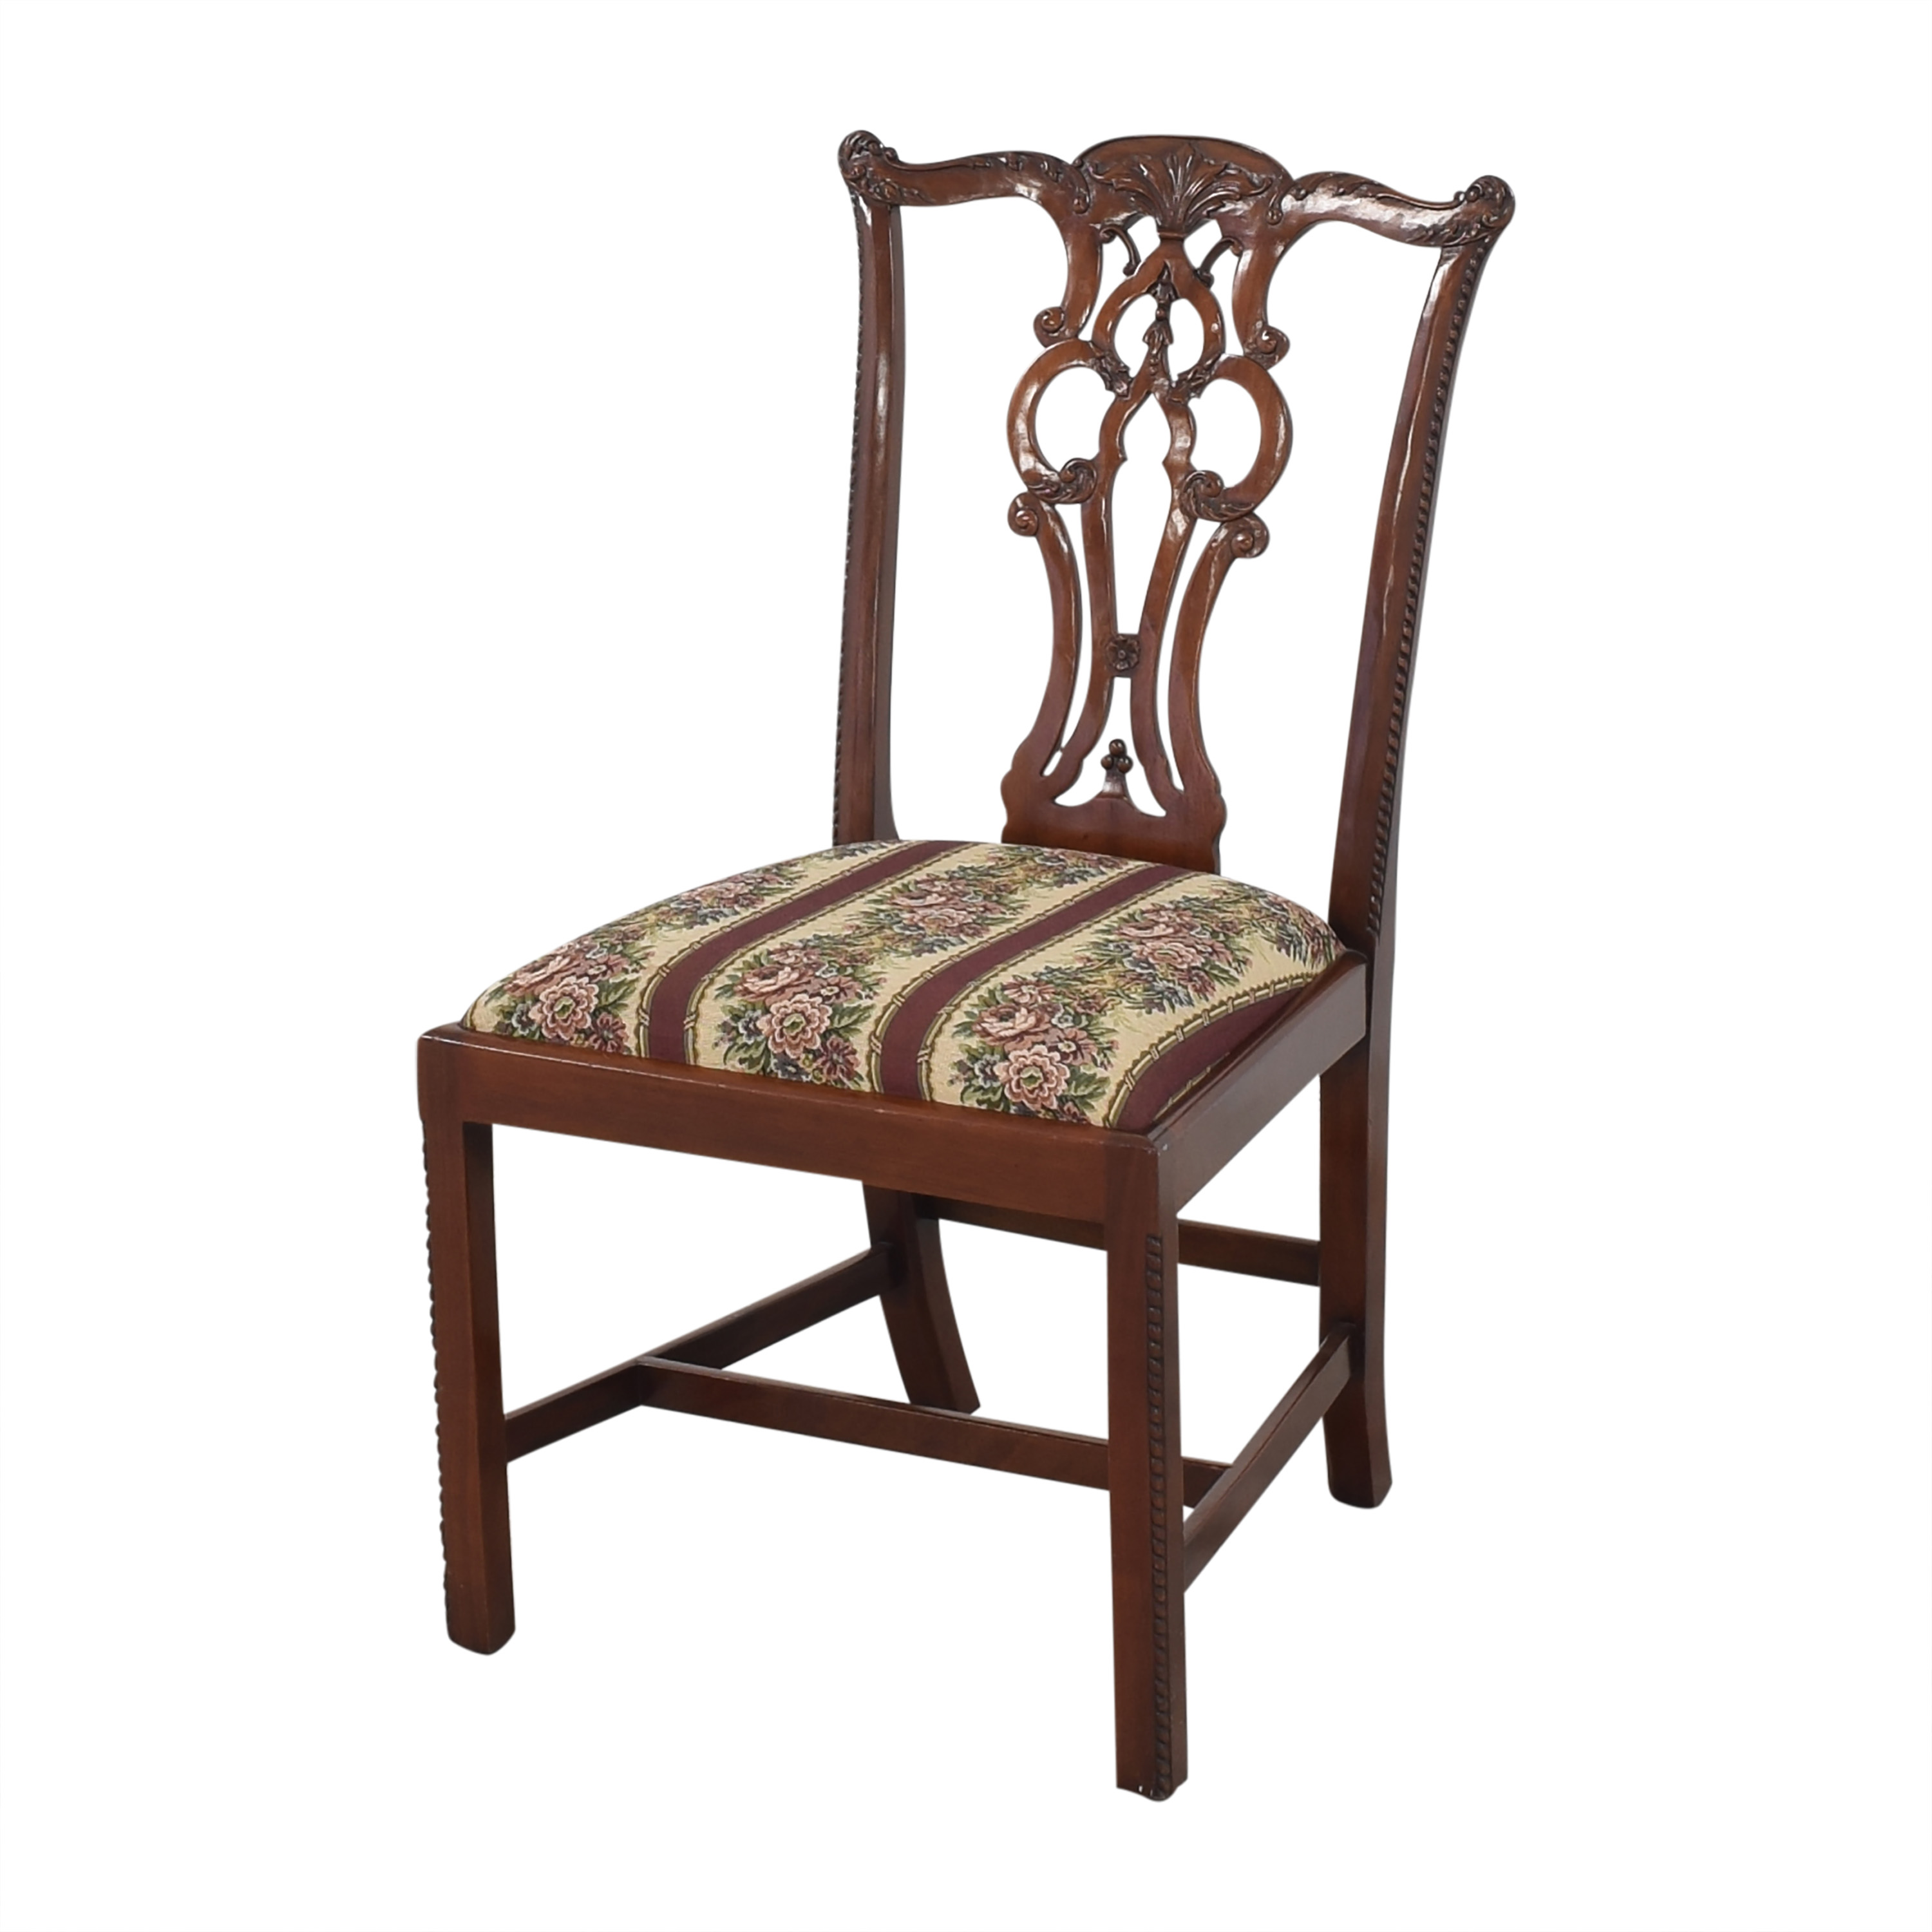 Maitland-Smith Maitland-Smith Chippendale Upholstered Dining Chairs nj